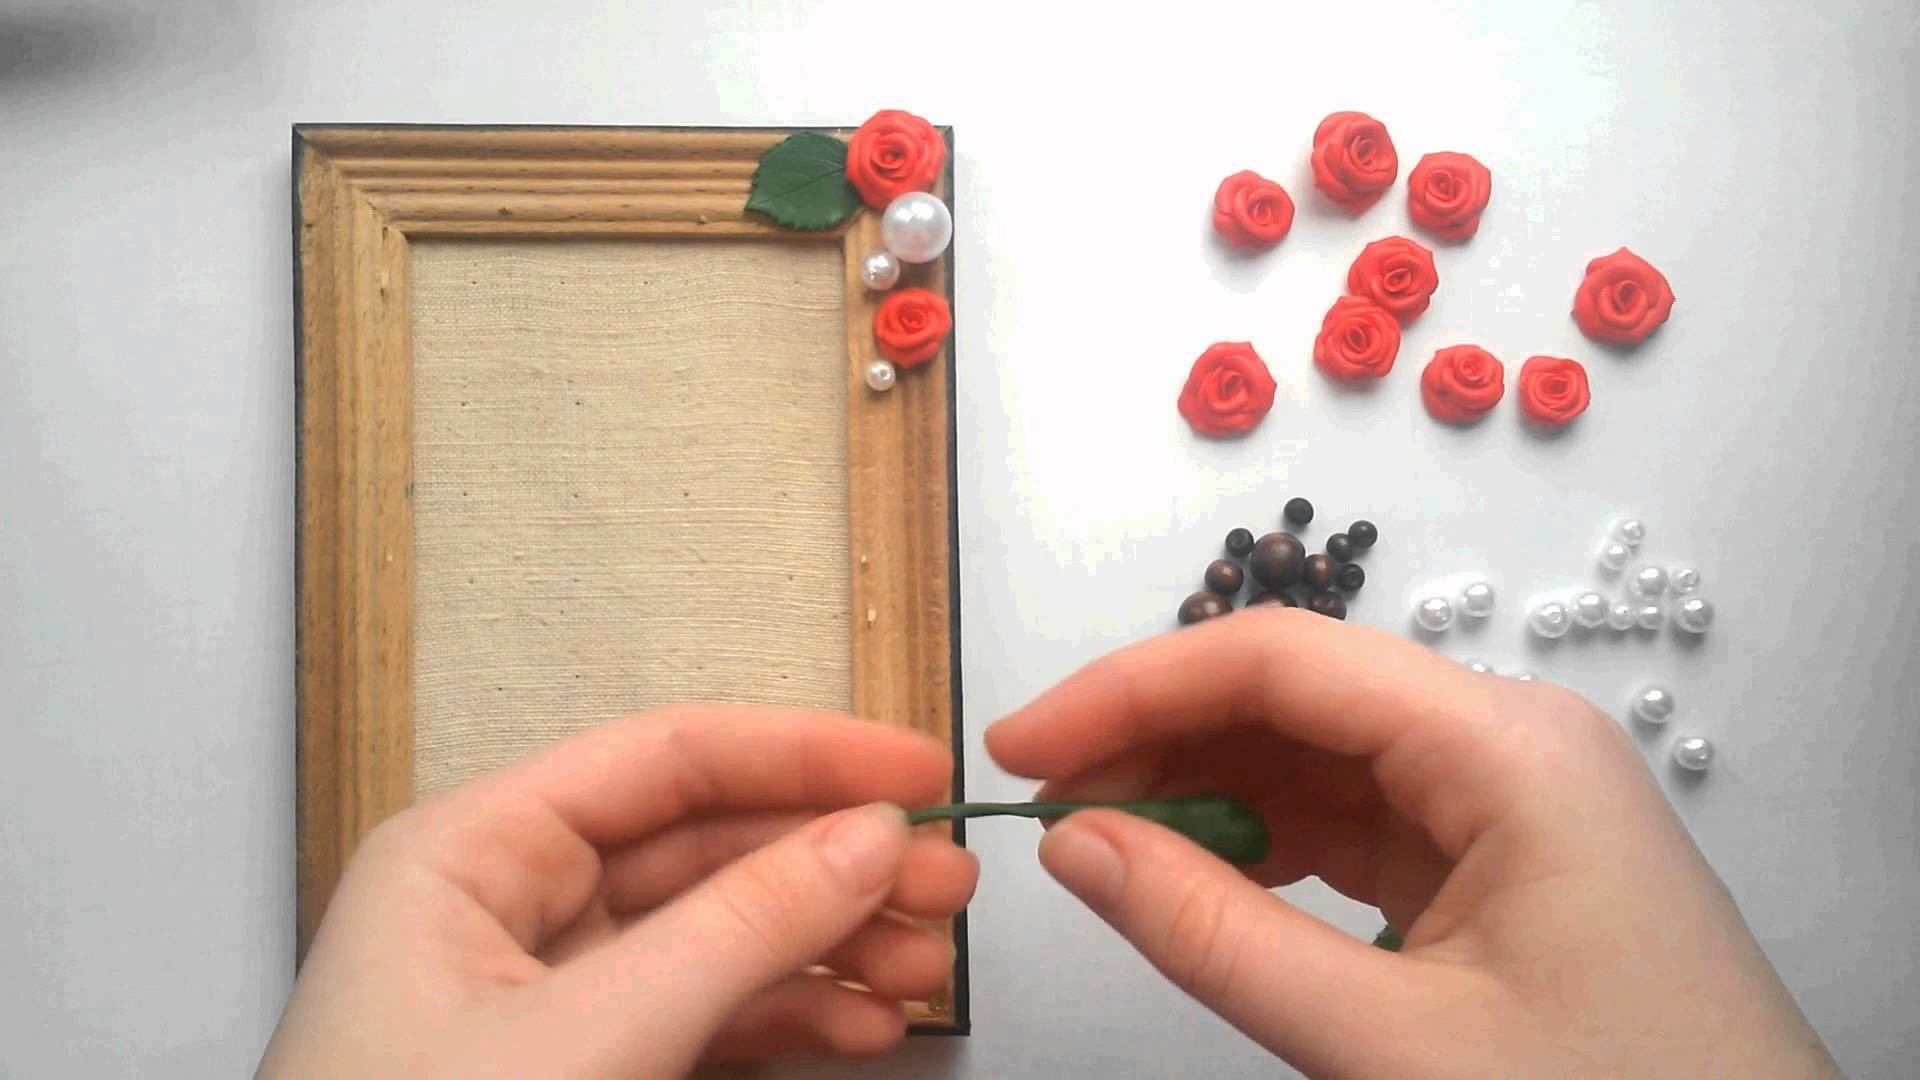 МК: Декор рамки розами из пластики. DIY: Picture frame decor by roses from polymer clay